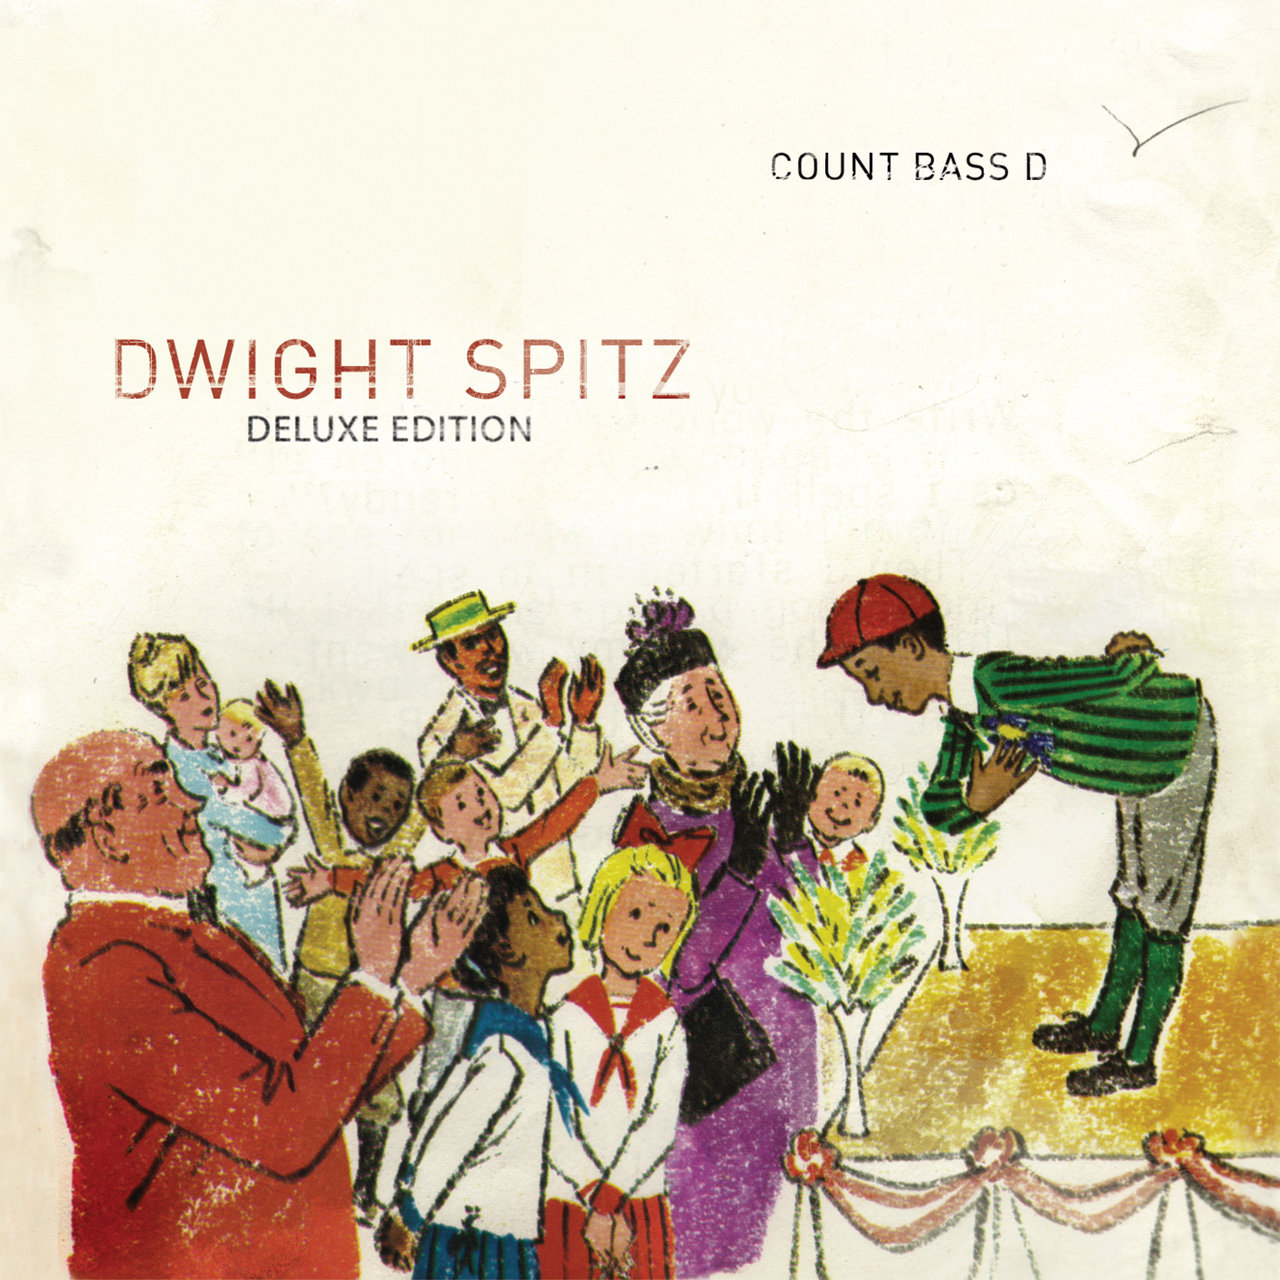 Dwight Spitz (Deluxe Edition)